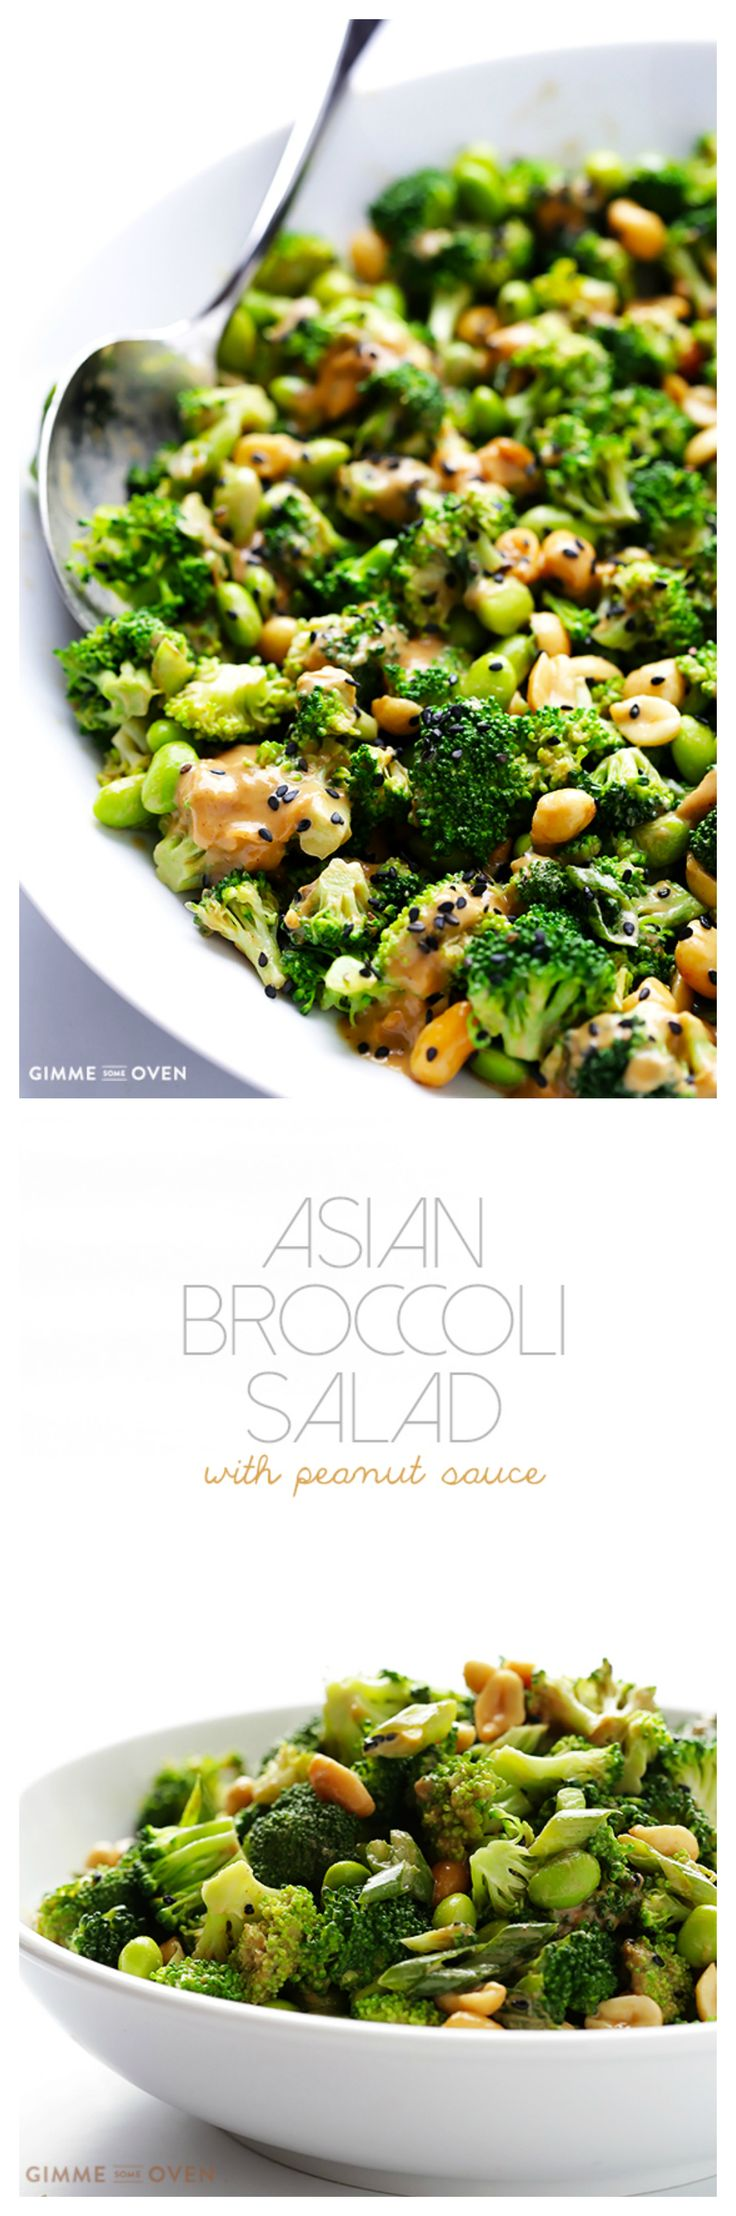 Asian Broccoli Salad with Peanut Sauce -- made easy with just a few ingredients, and naturally glutenfree, vegan, and SO tasty! | gimmesomeoven.com